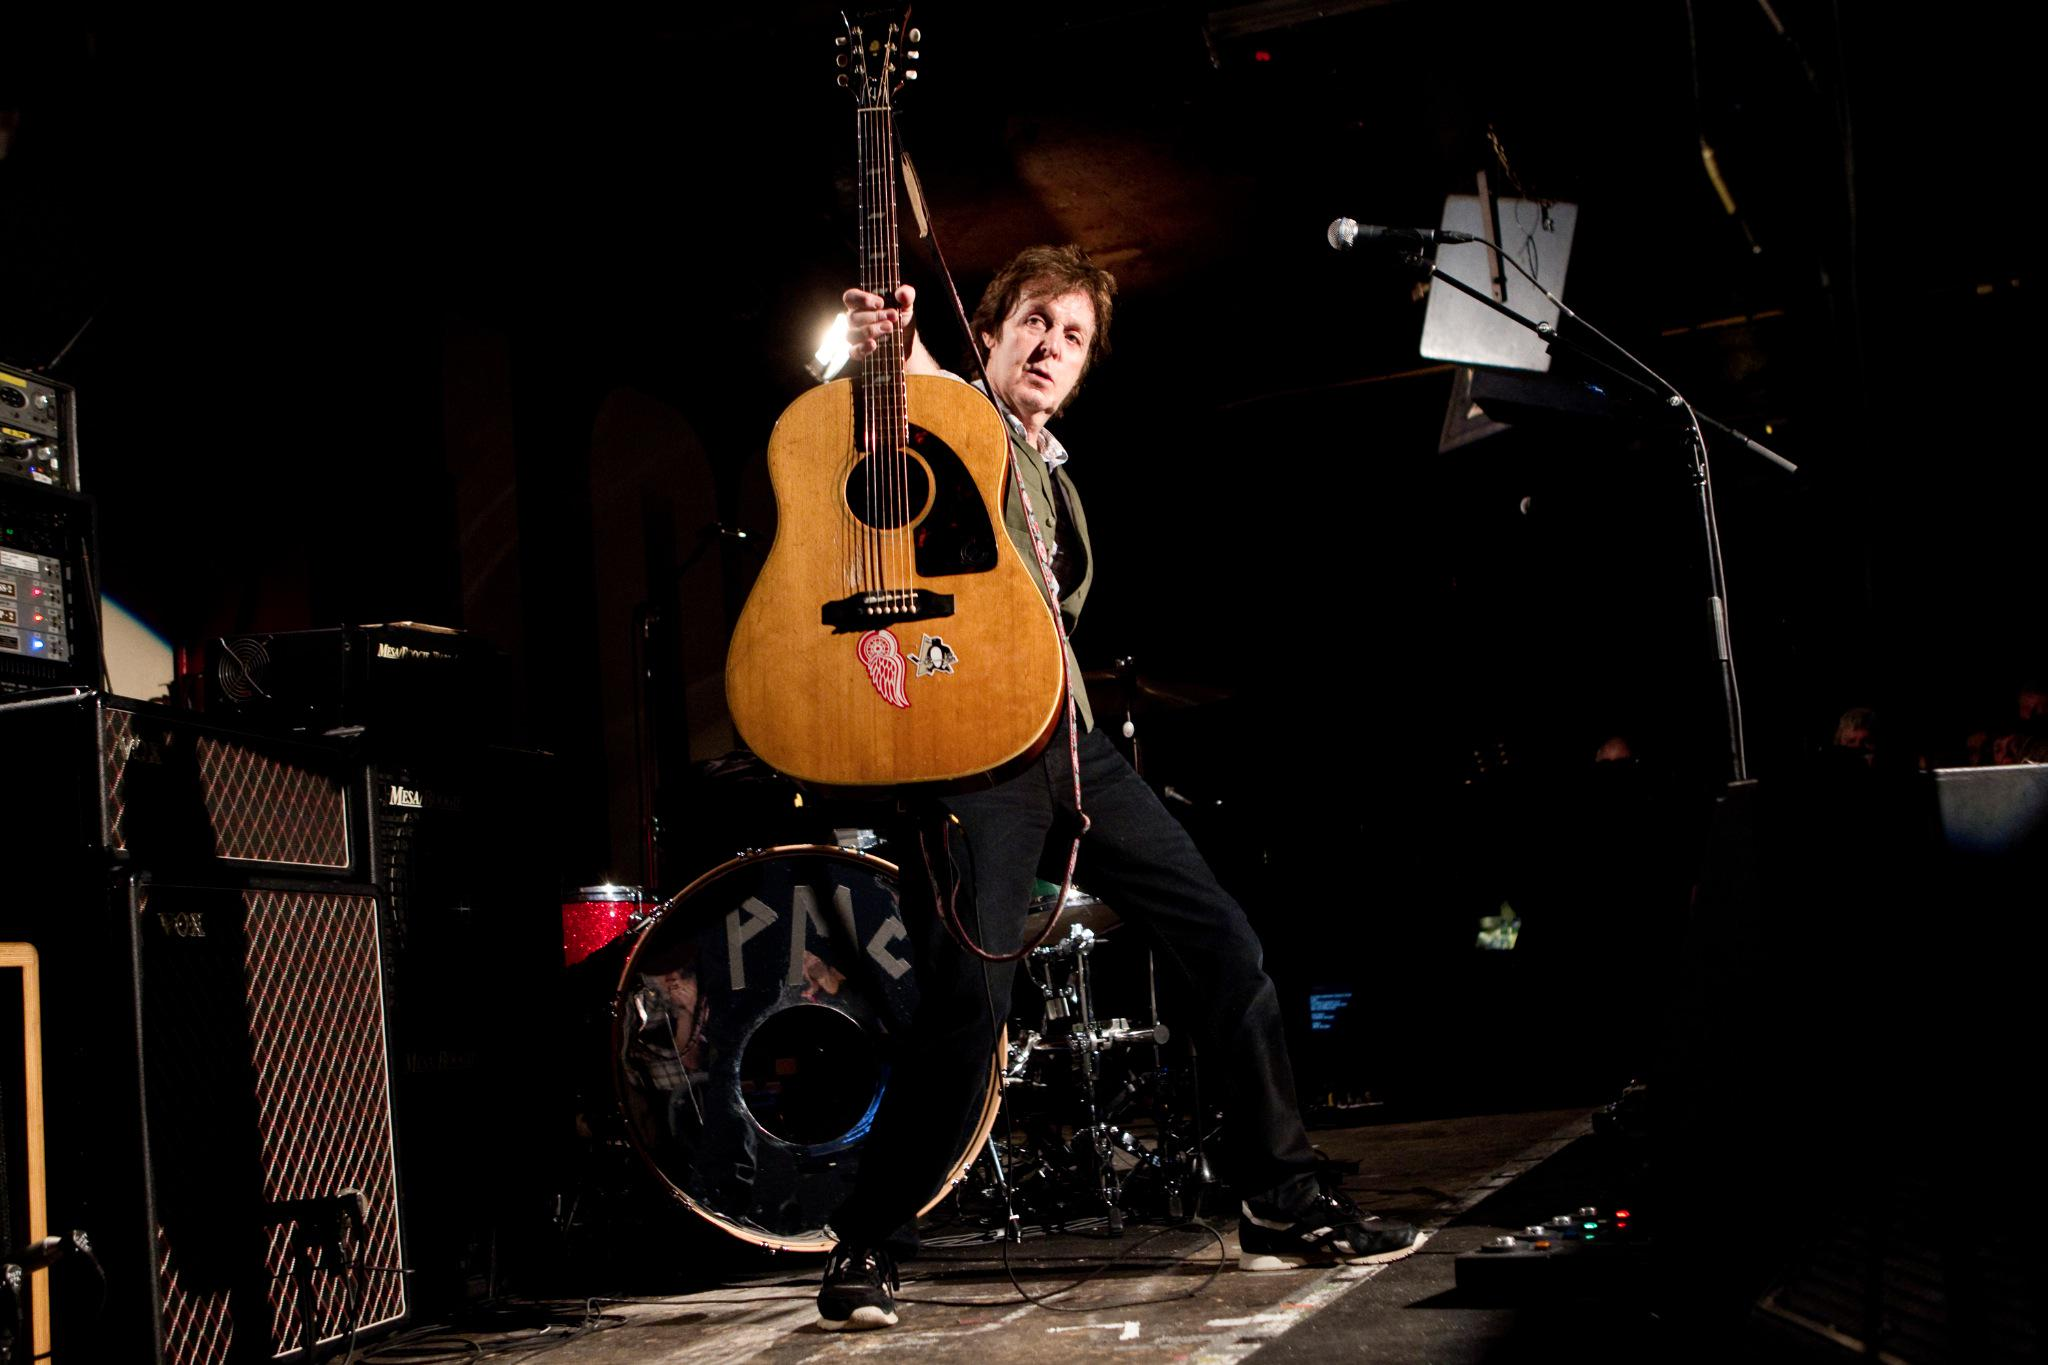 This week in 2010 Paul played the @100clublondon #ThrowbackThursday #TBT http://t.co/tFKBVmBCOv